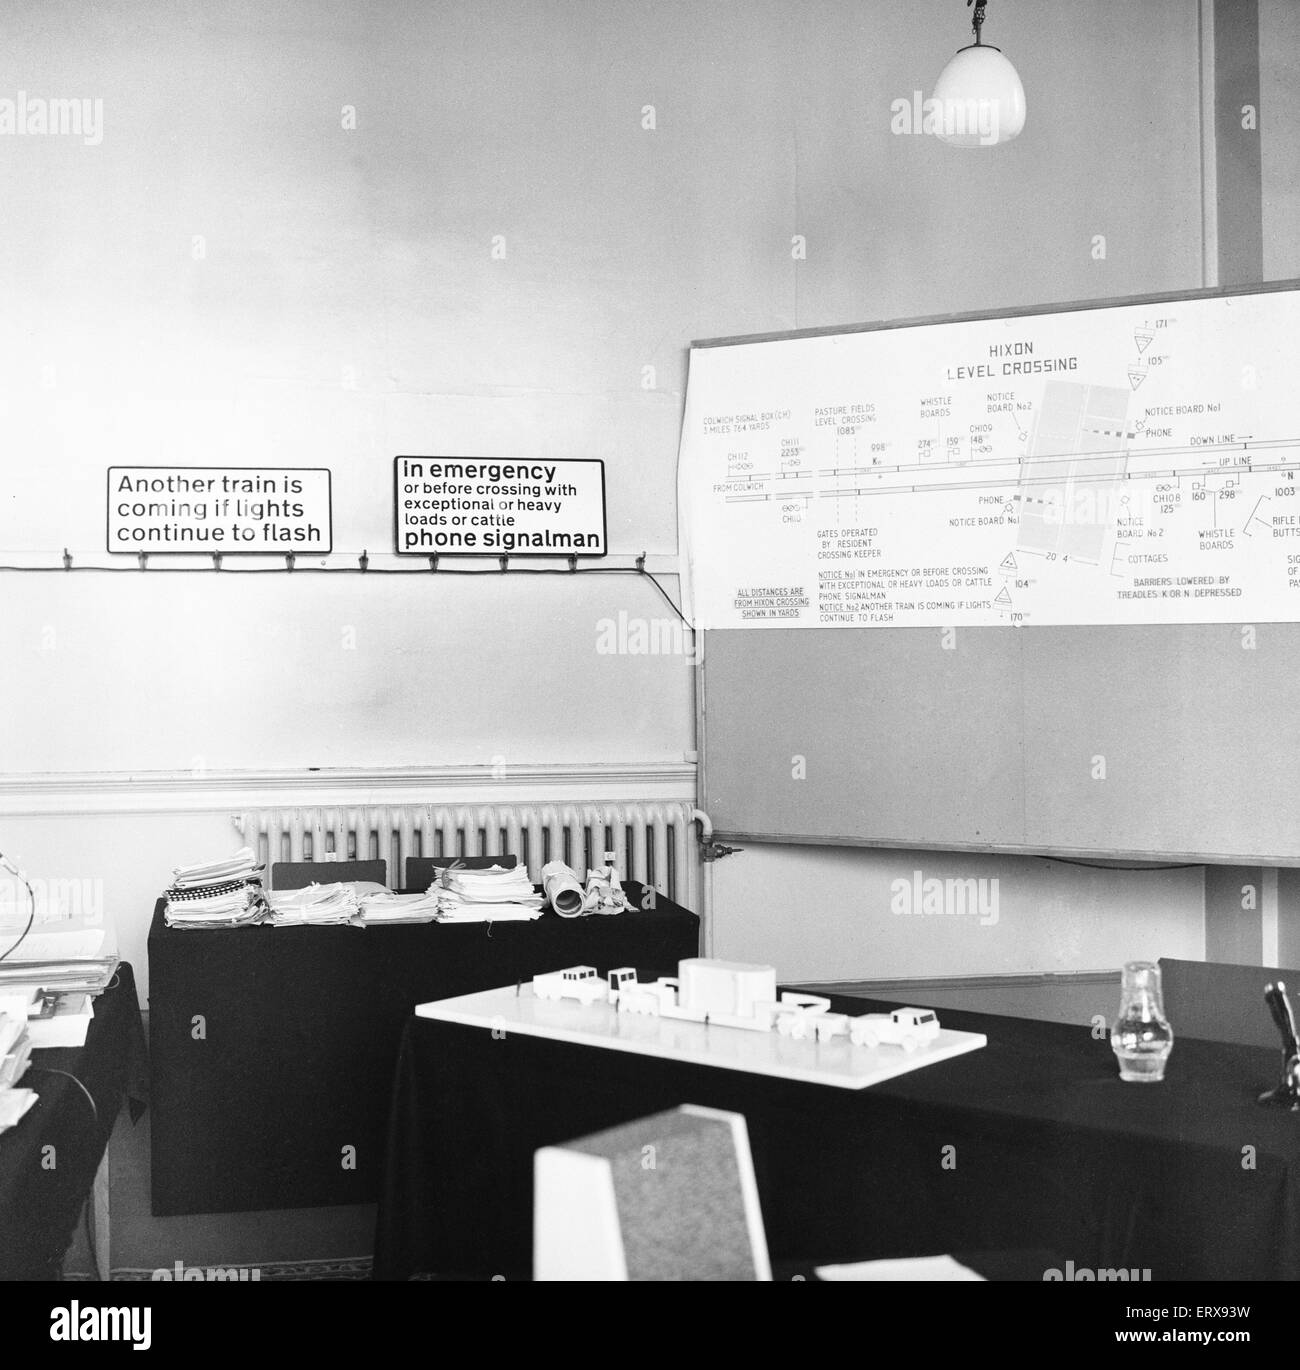 Model showing the transformer transport as it crossed the Hixon level crossing and diagram on the wall of the court - Stock Image